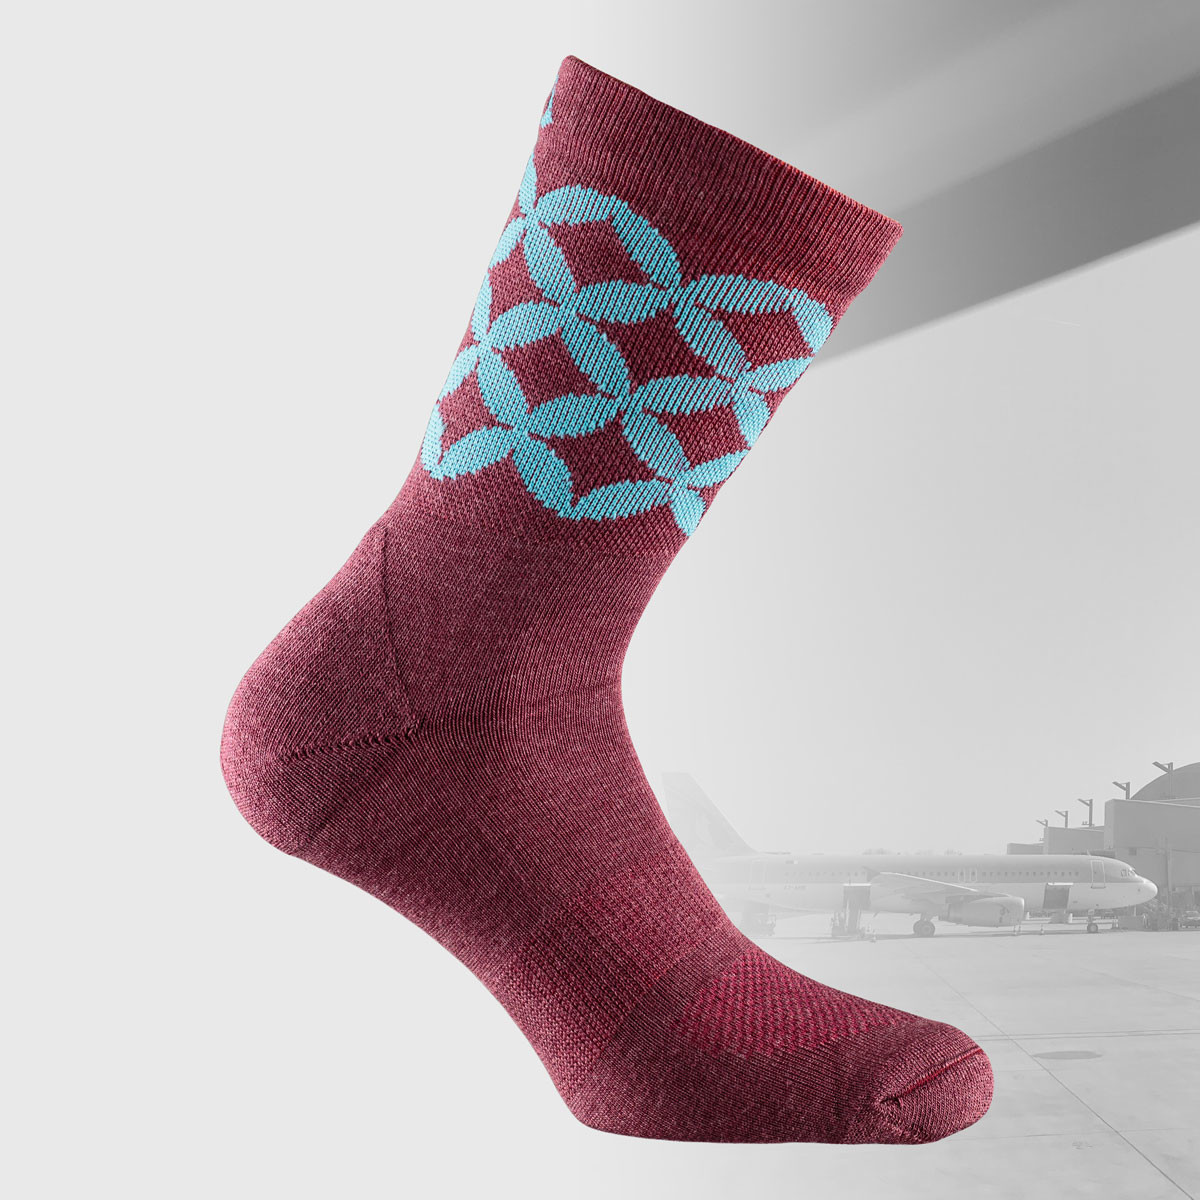 travel socks in burgundy colors with moroccan design